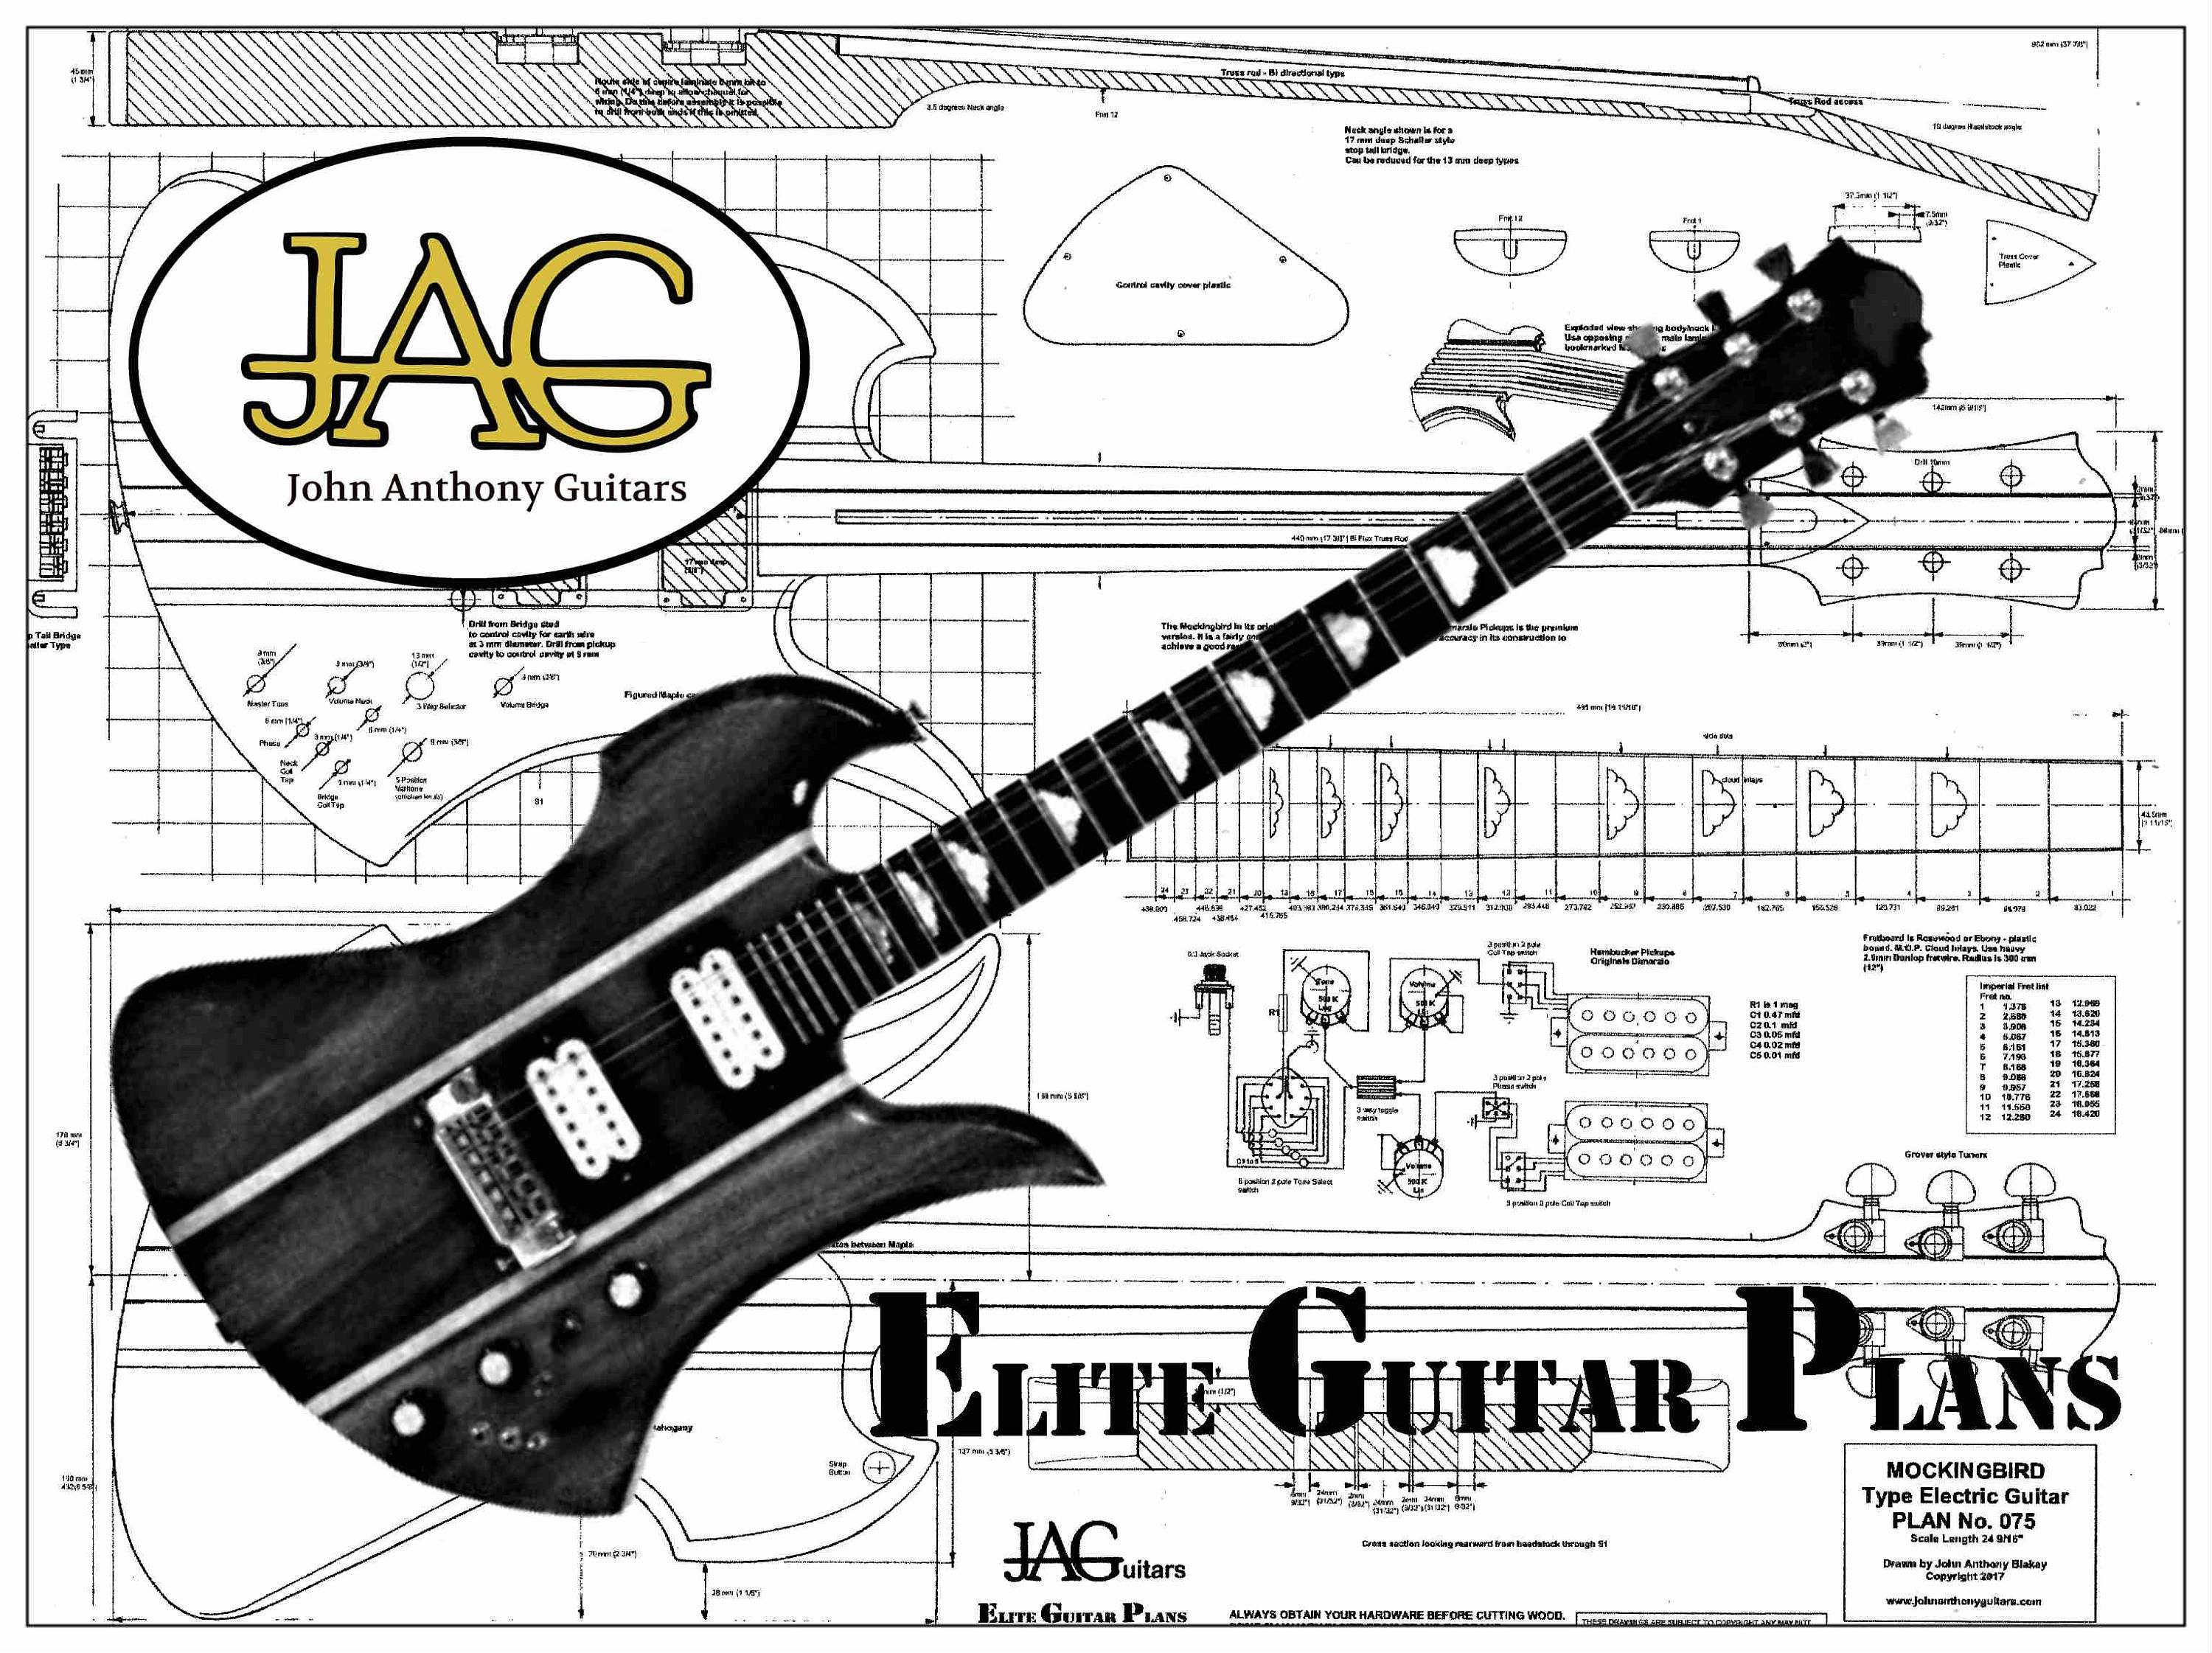 f948163f8 Rolled luthiers plan to build a B.C Rich Mockingbird guitar for DIY project  or ideal gift. by JohnAnthonyGuitars on Etsy